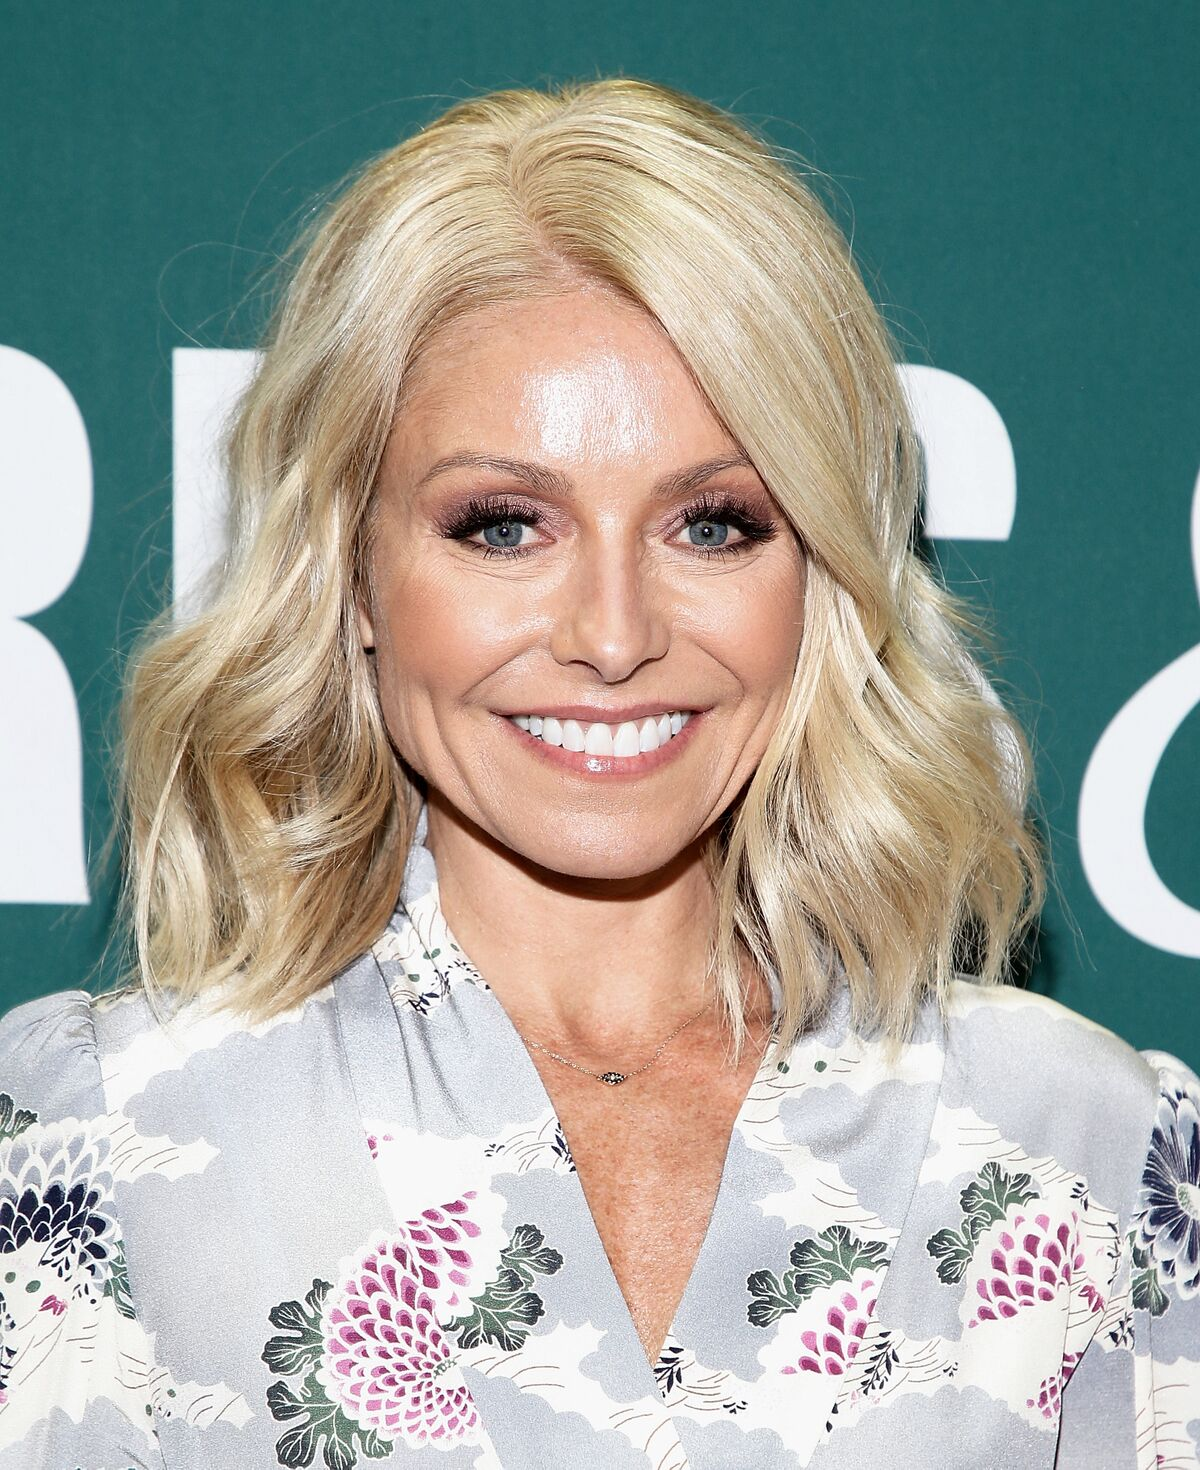 """Kelly Ripa attends Jake Shears new book signing """"Boys Keep Swinging"""" at Barnes & Noble Union Square on February 28, 2018 in New York City   Photo: Getty Images"""